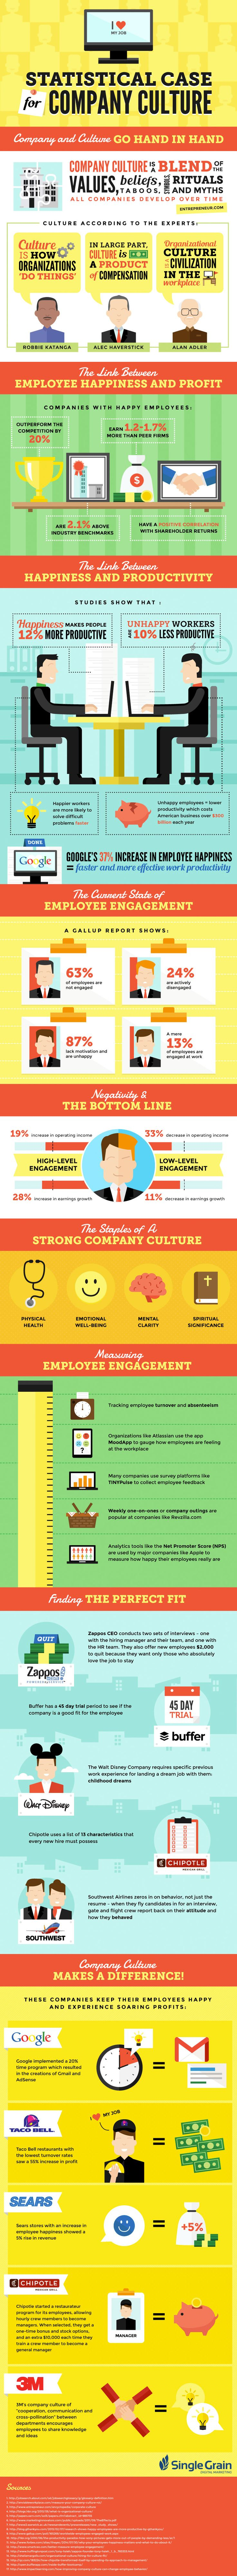 "If you're tired of the buzzwords ""company culture"" #sorrywearenotsorry but it matters! SO. Much."